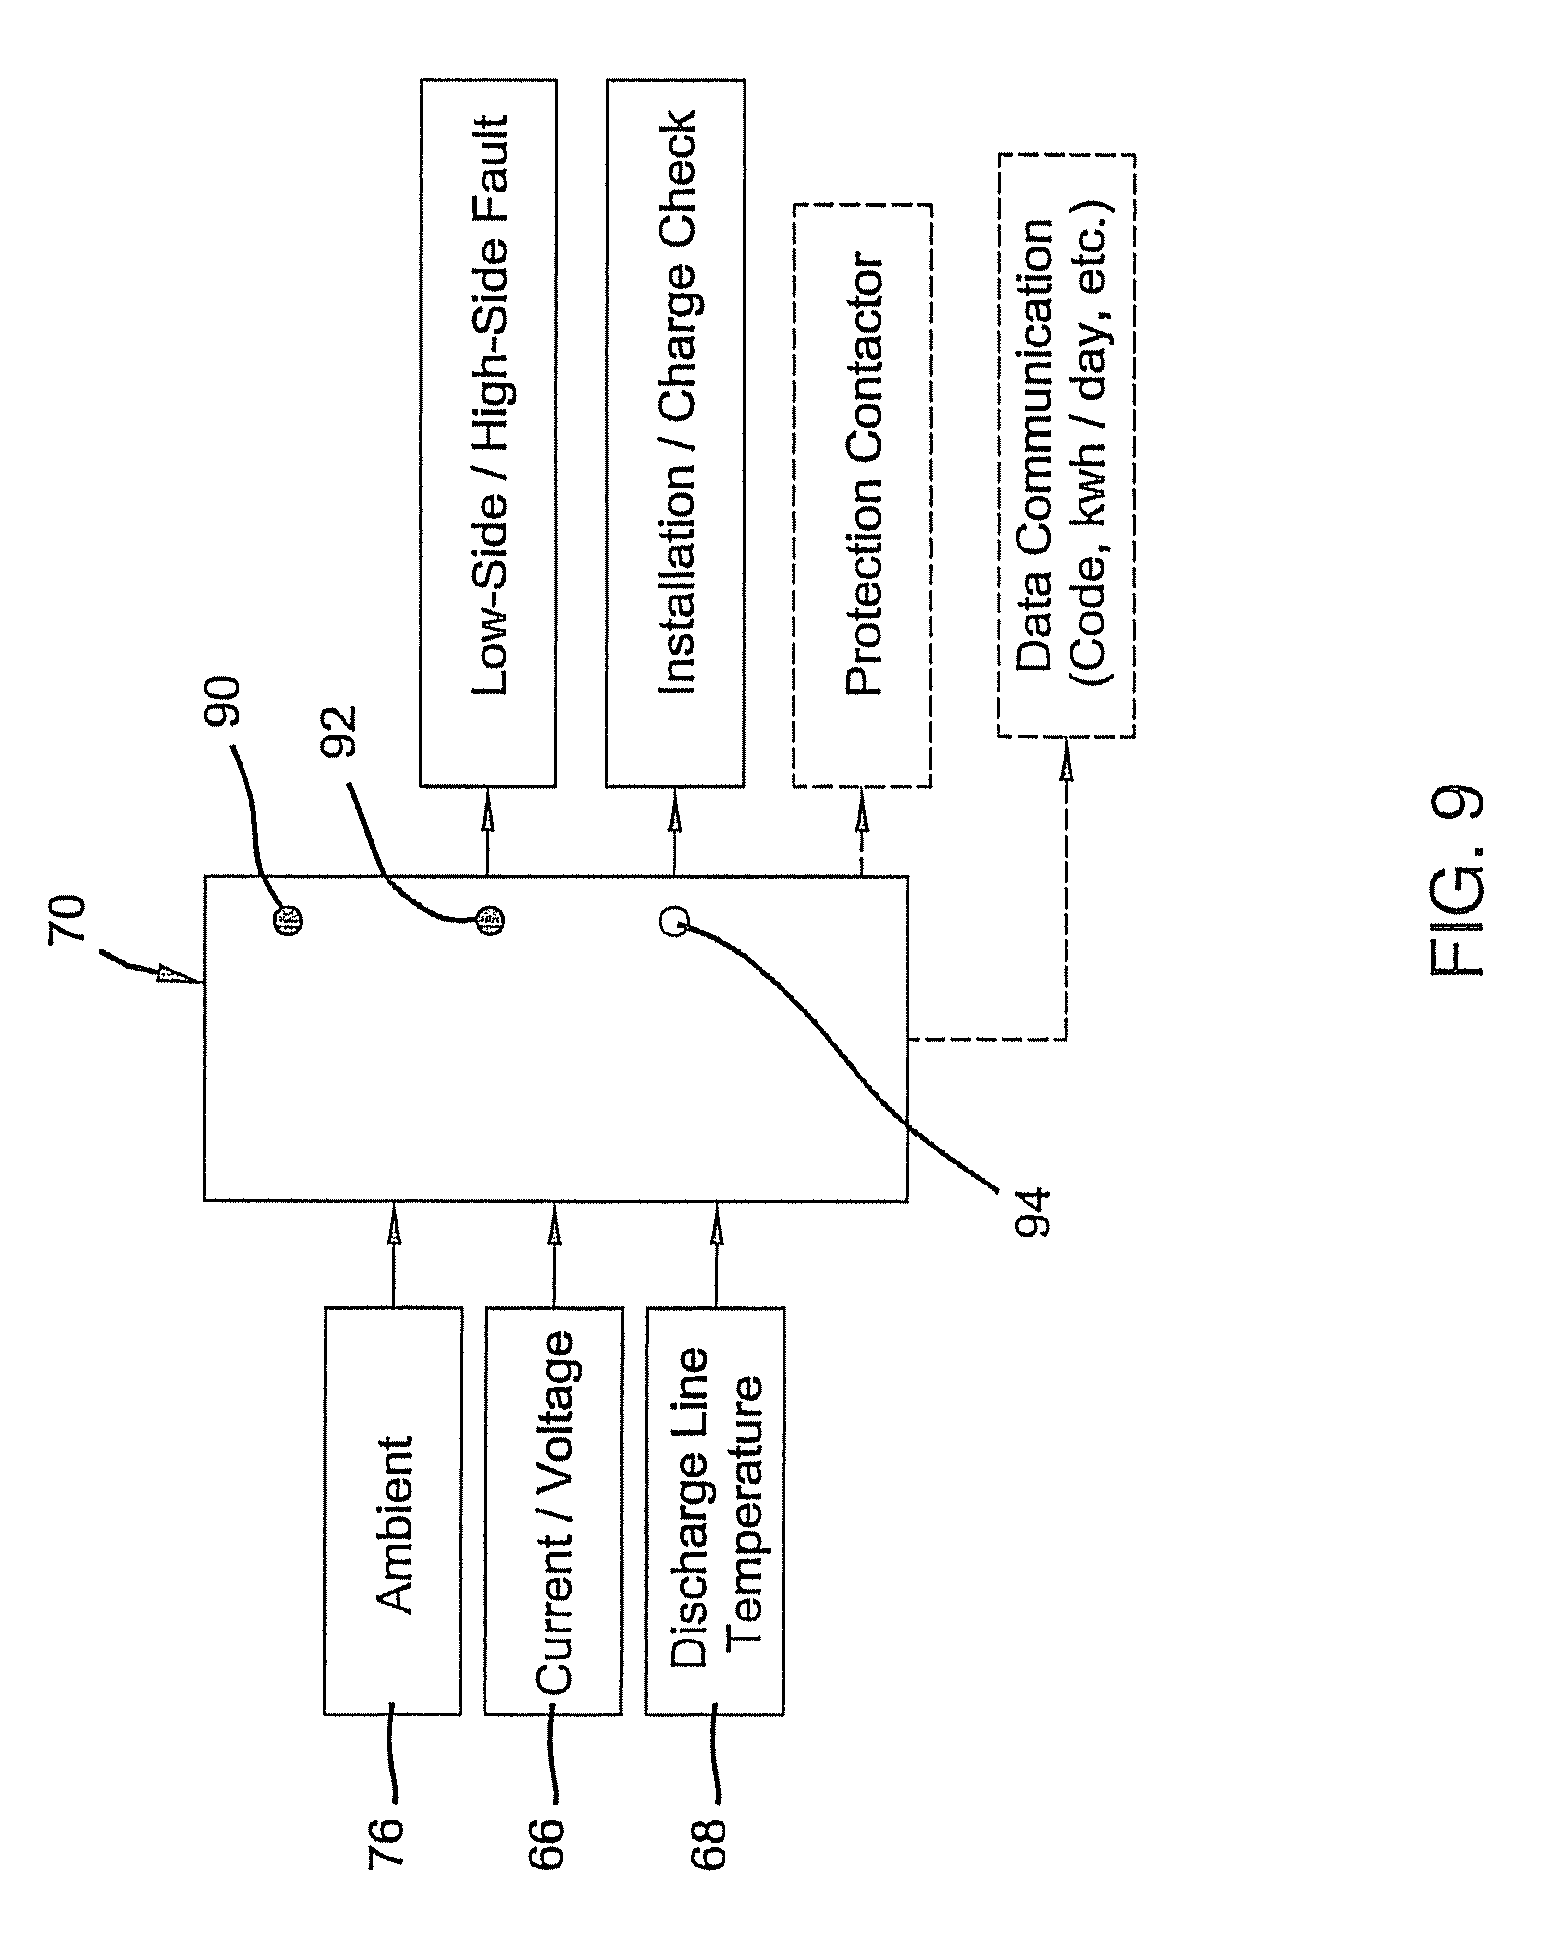 patent us 9,121,407 b2Control System For Controlling Multiple Compressors Google Patents #17